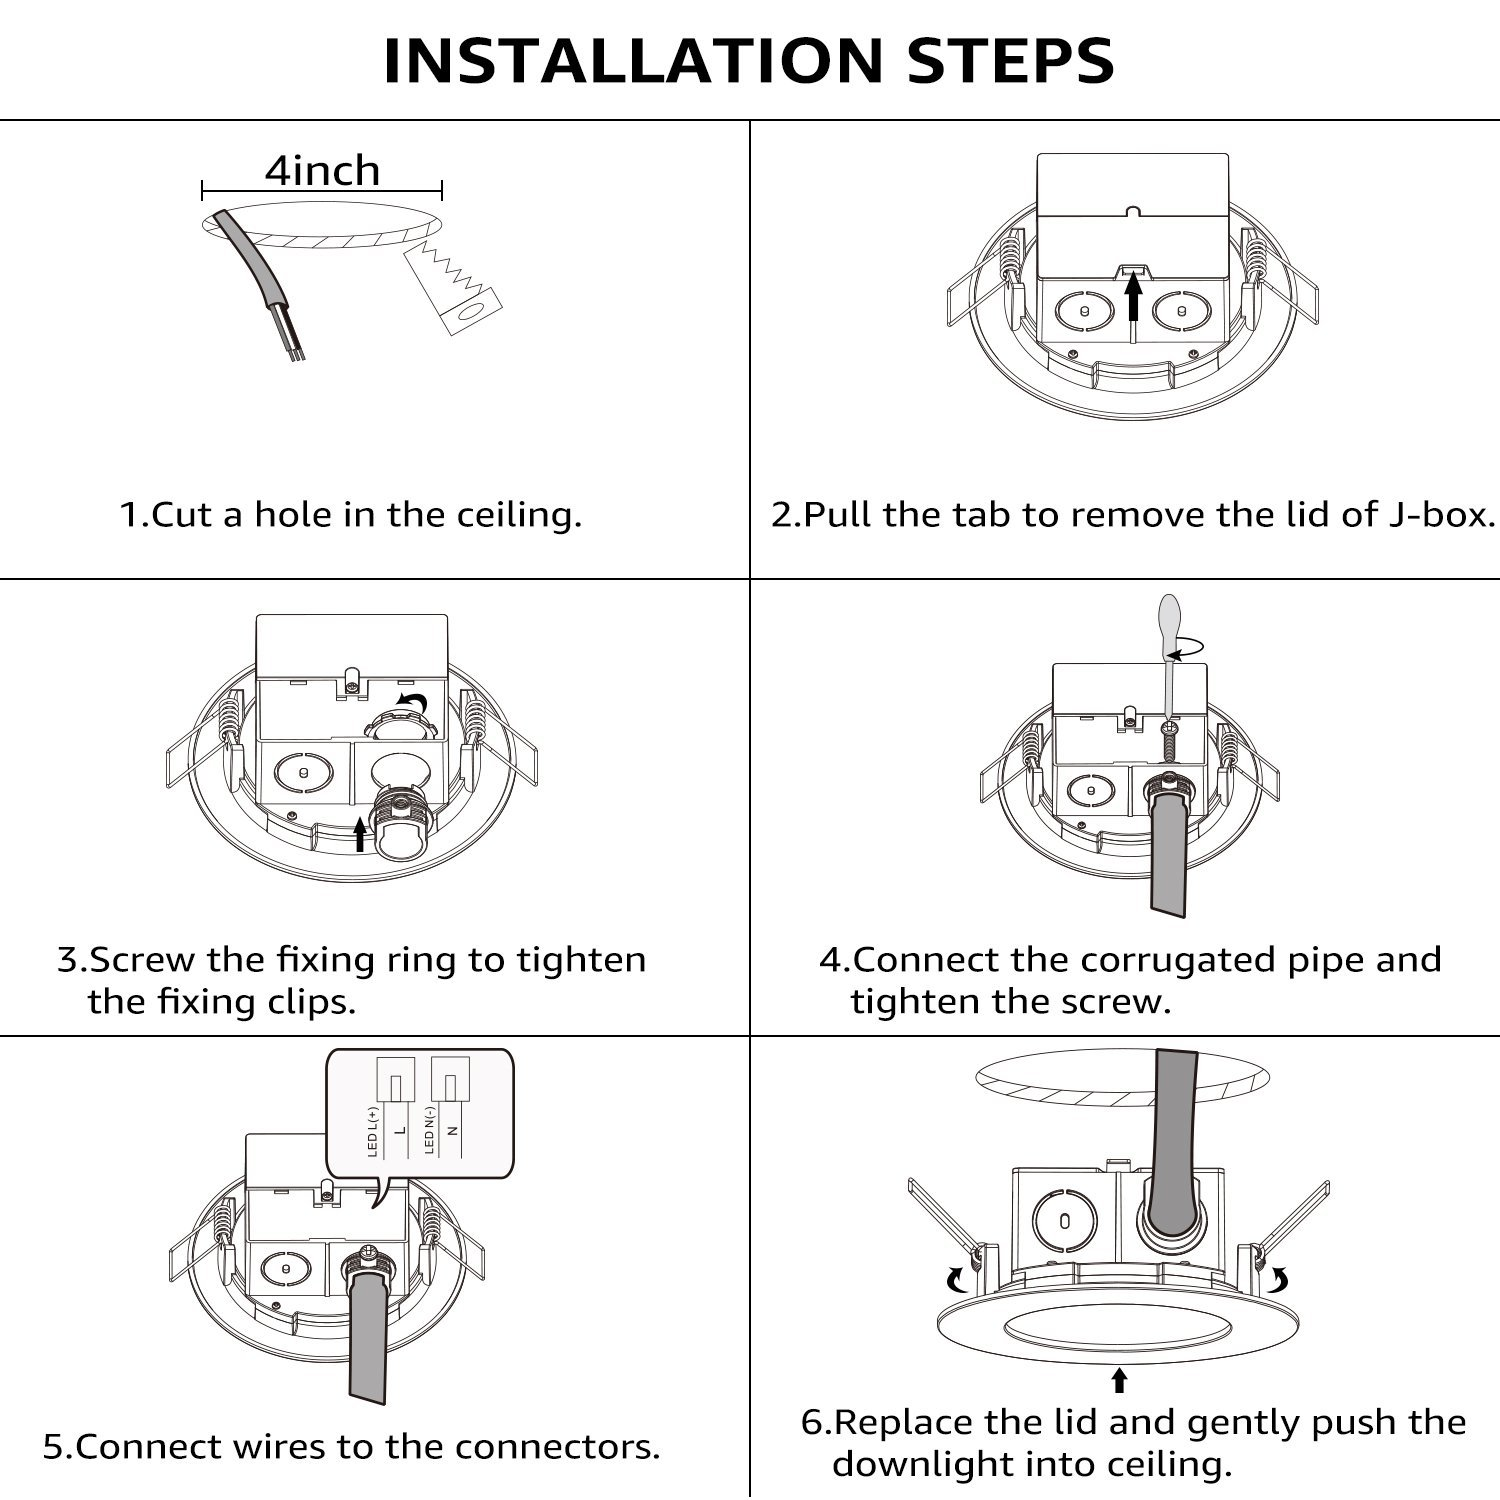 Torchstar 4 Inch Slim Recessed Ceiling Light 9w 65w Equivalent Bulb Wiring Diagram Leviton 660 Dimmable Airtight Downlight With Junction Box Ul Energy Star Certified 650lm